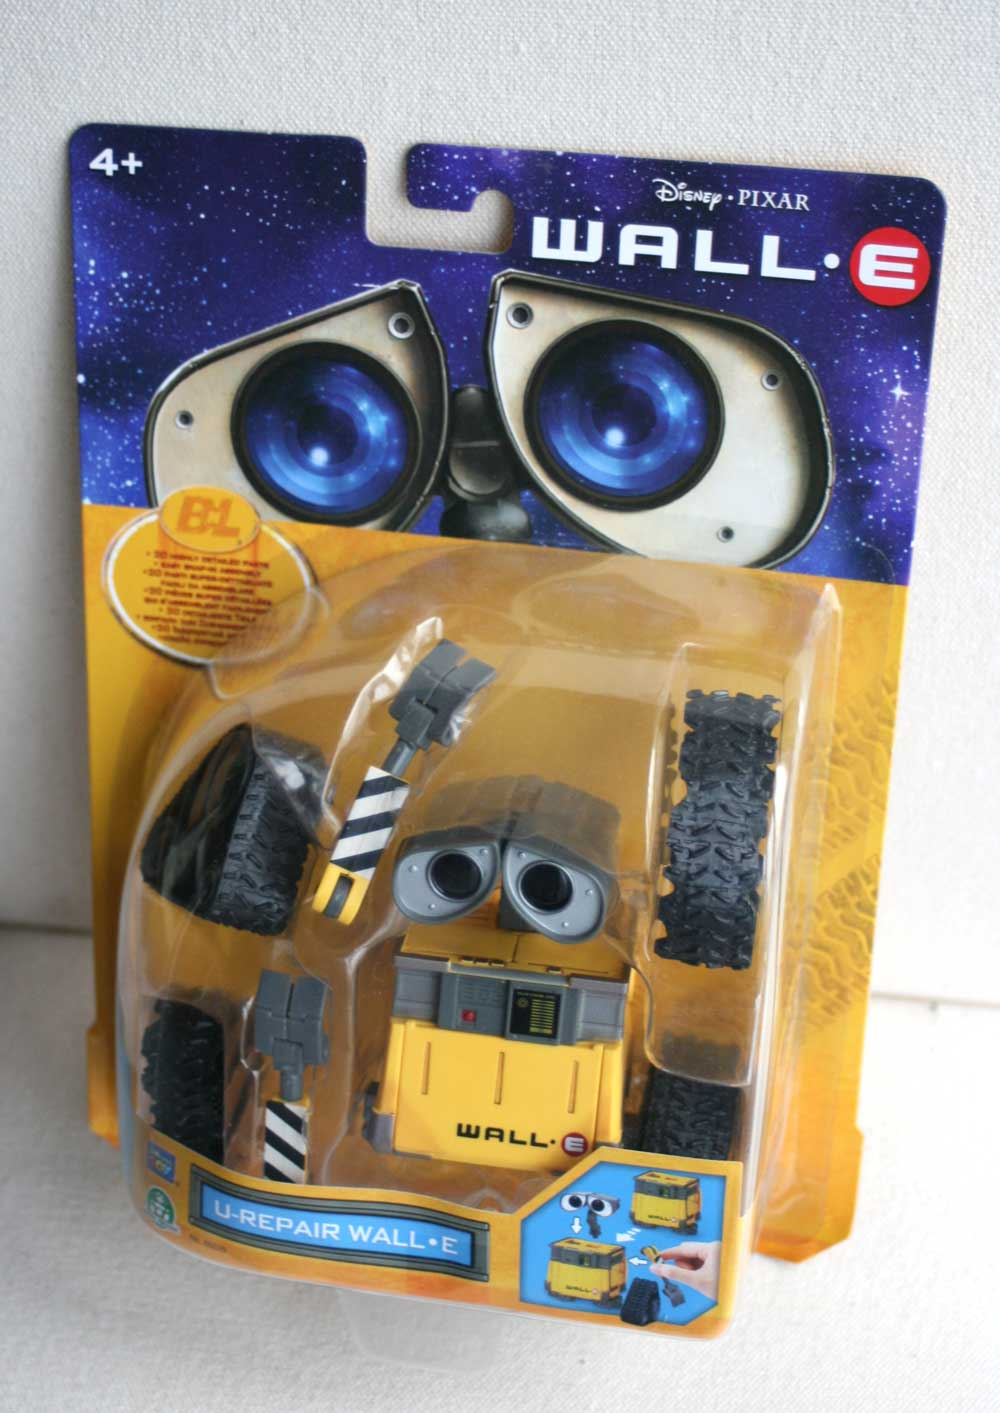 U-Repair Wall-E (2008) packaging